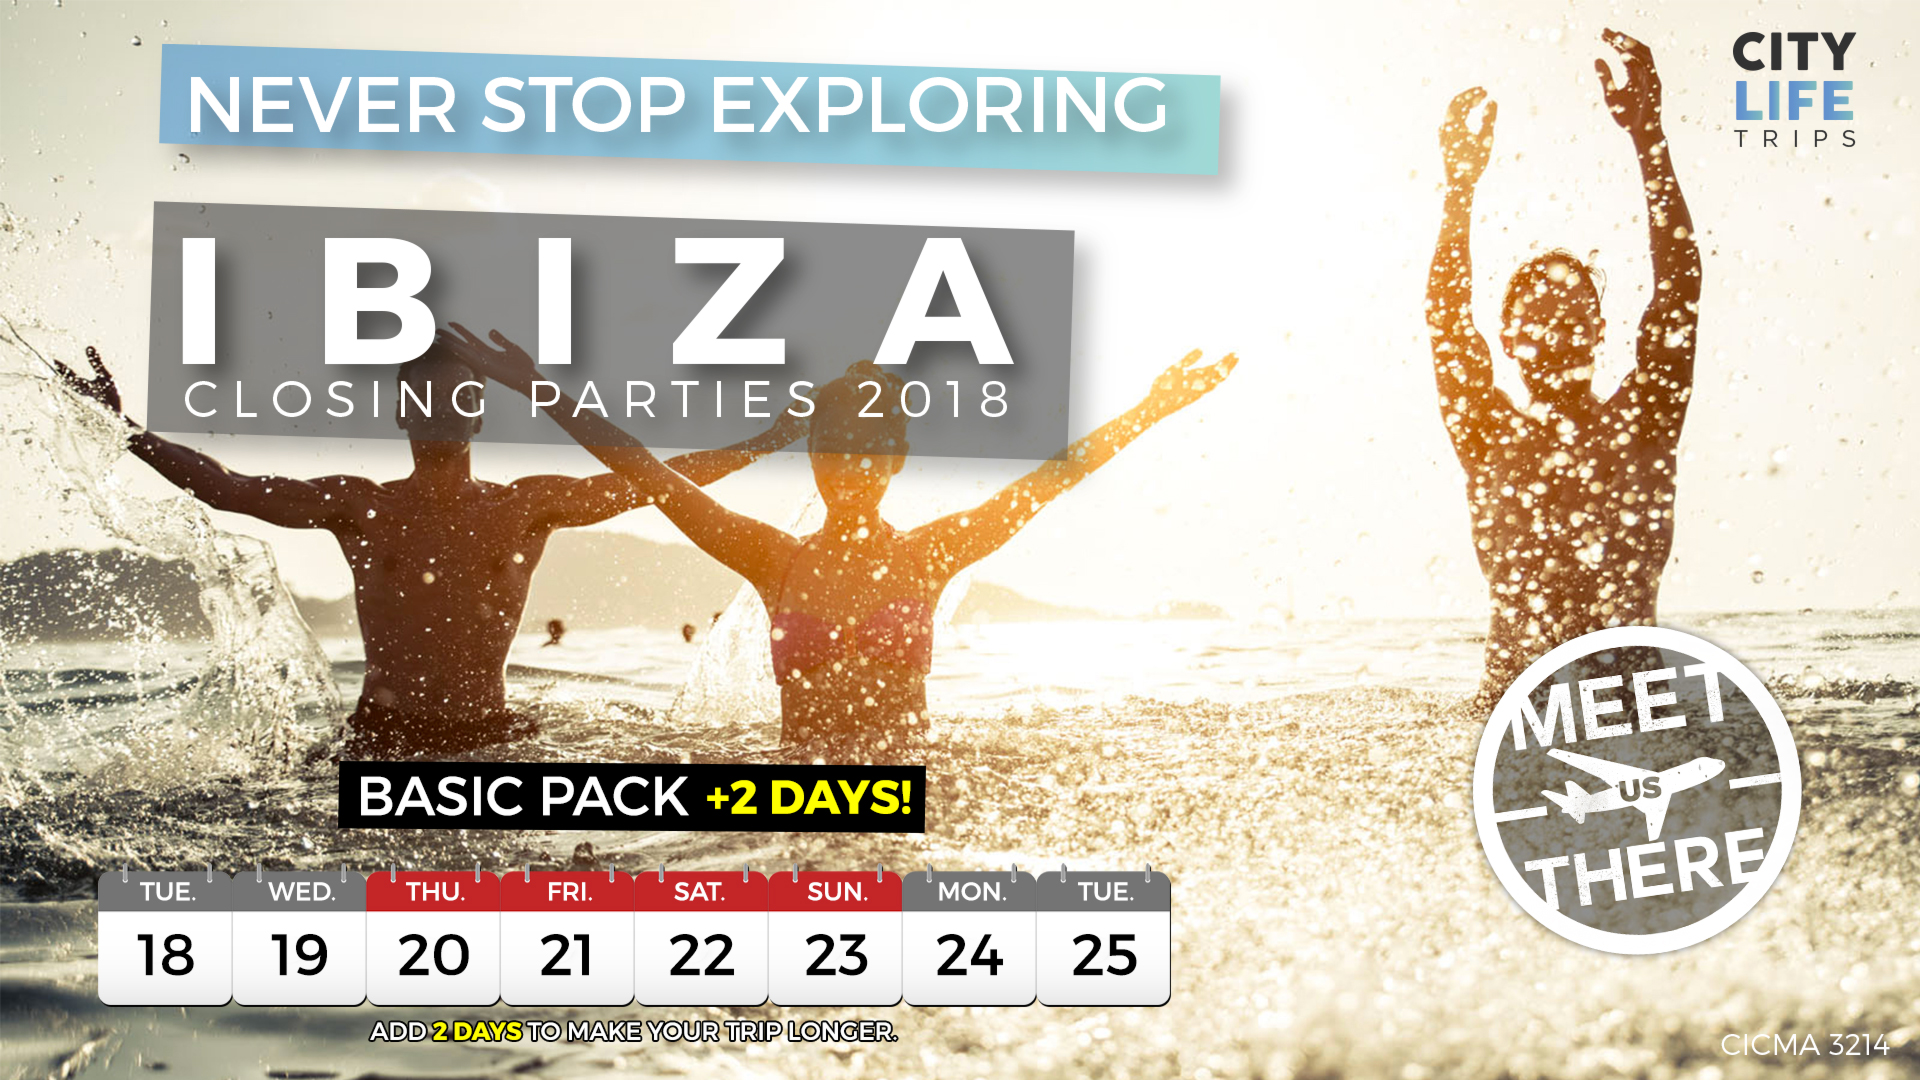 Ibiza - Closing Parties 2018 +2 Extra Days (Meet us There)